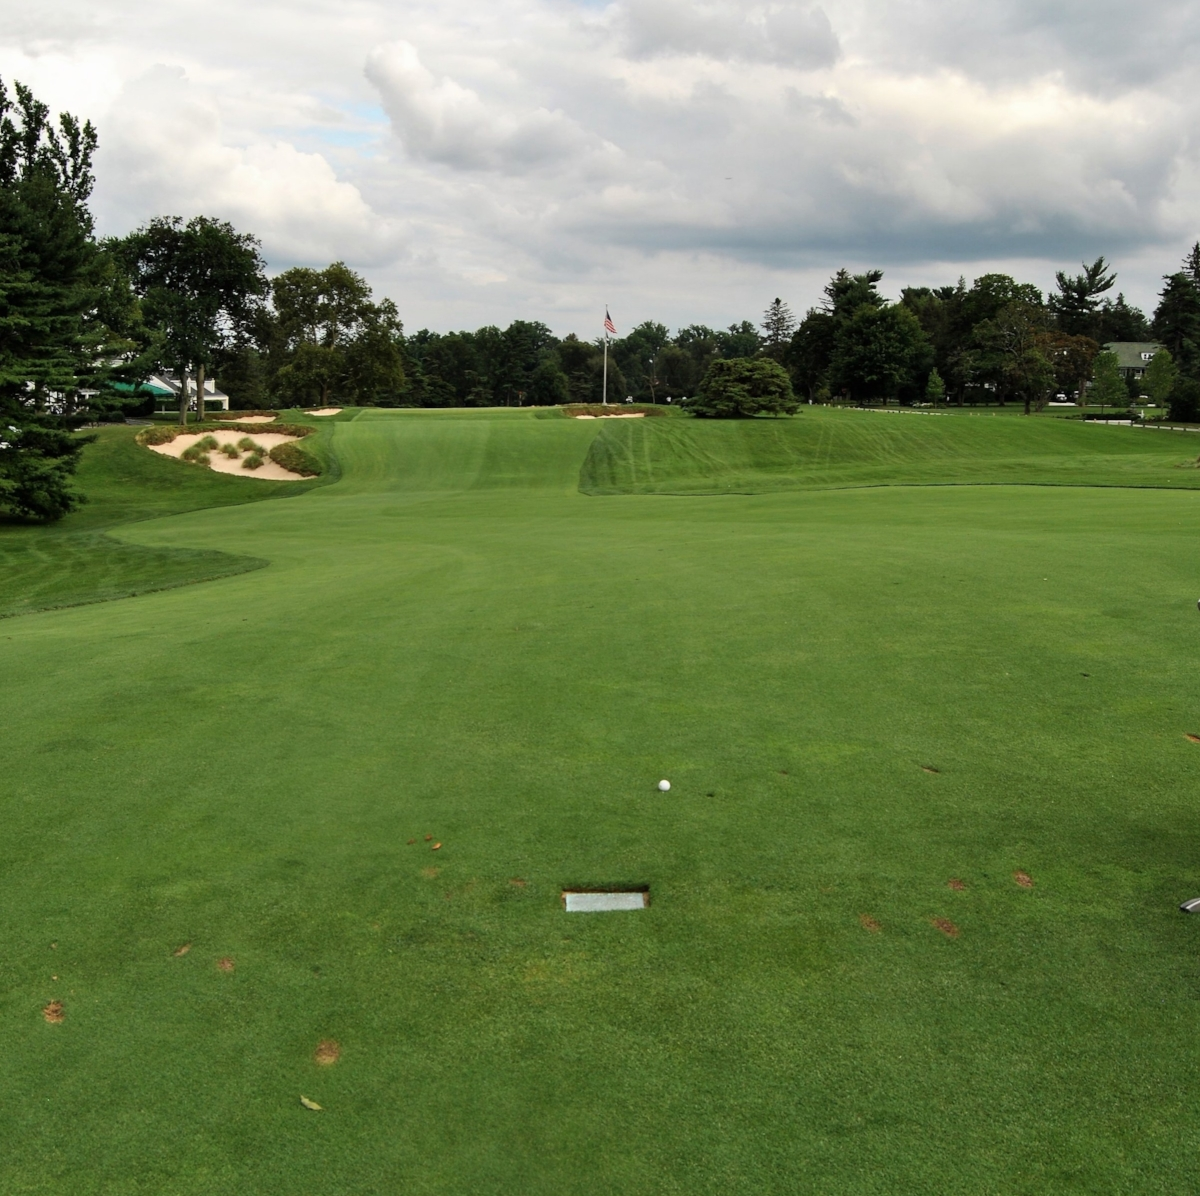 In the footprints of legends. My drive on the 18th hole.